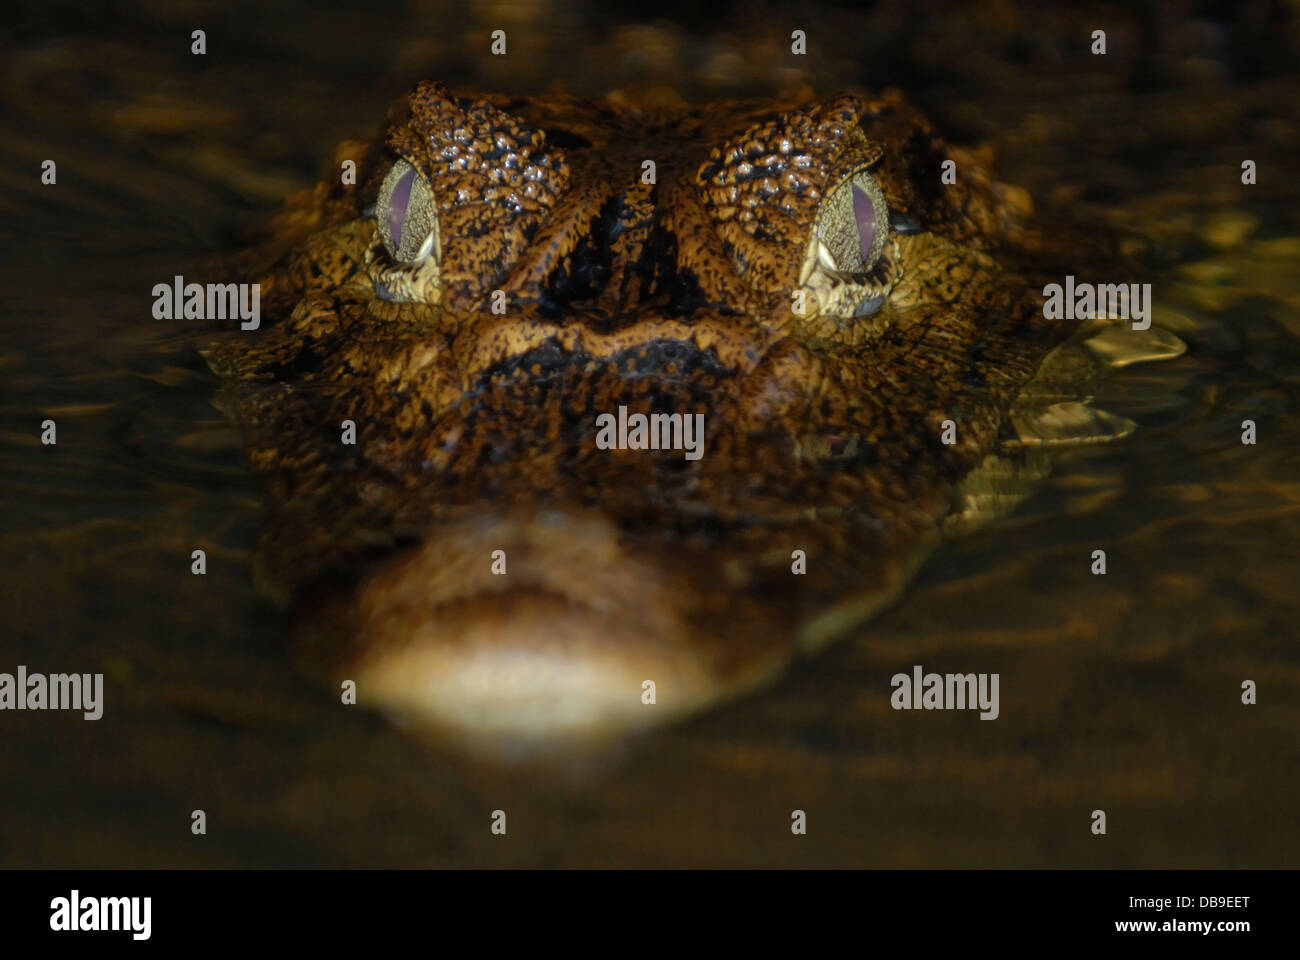 Spectacled Caiman (Caiman crocodilus) in Tortuguero National Park, Costa Rica. - Stock Image